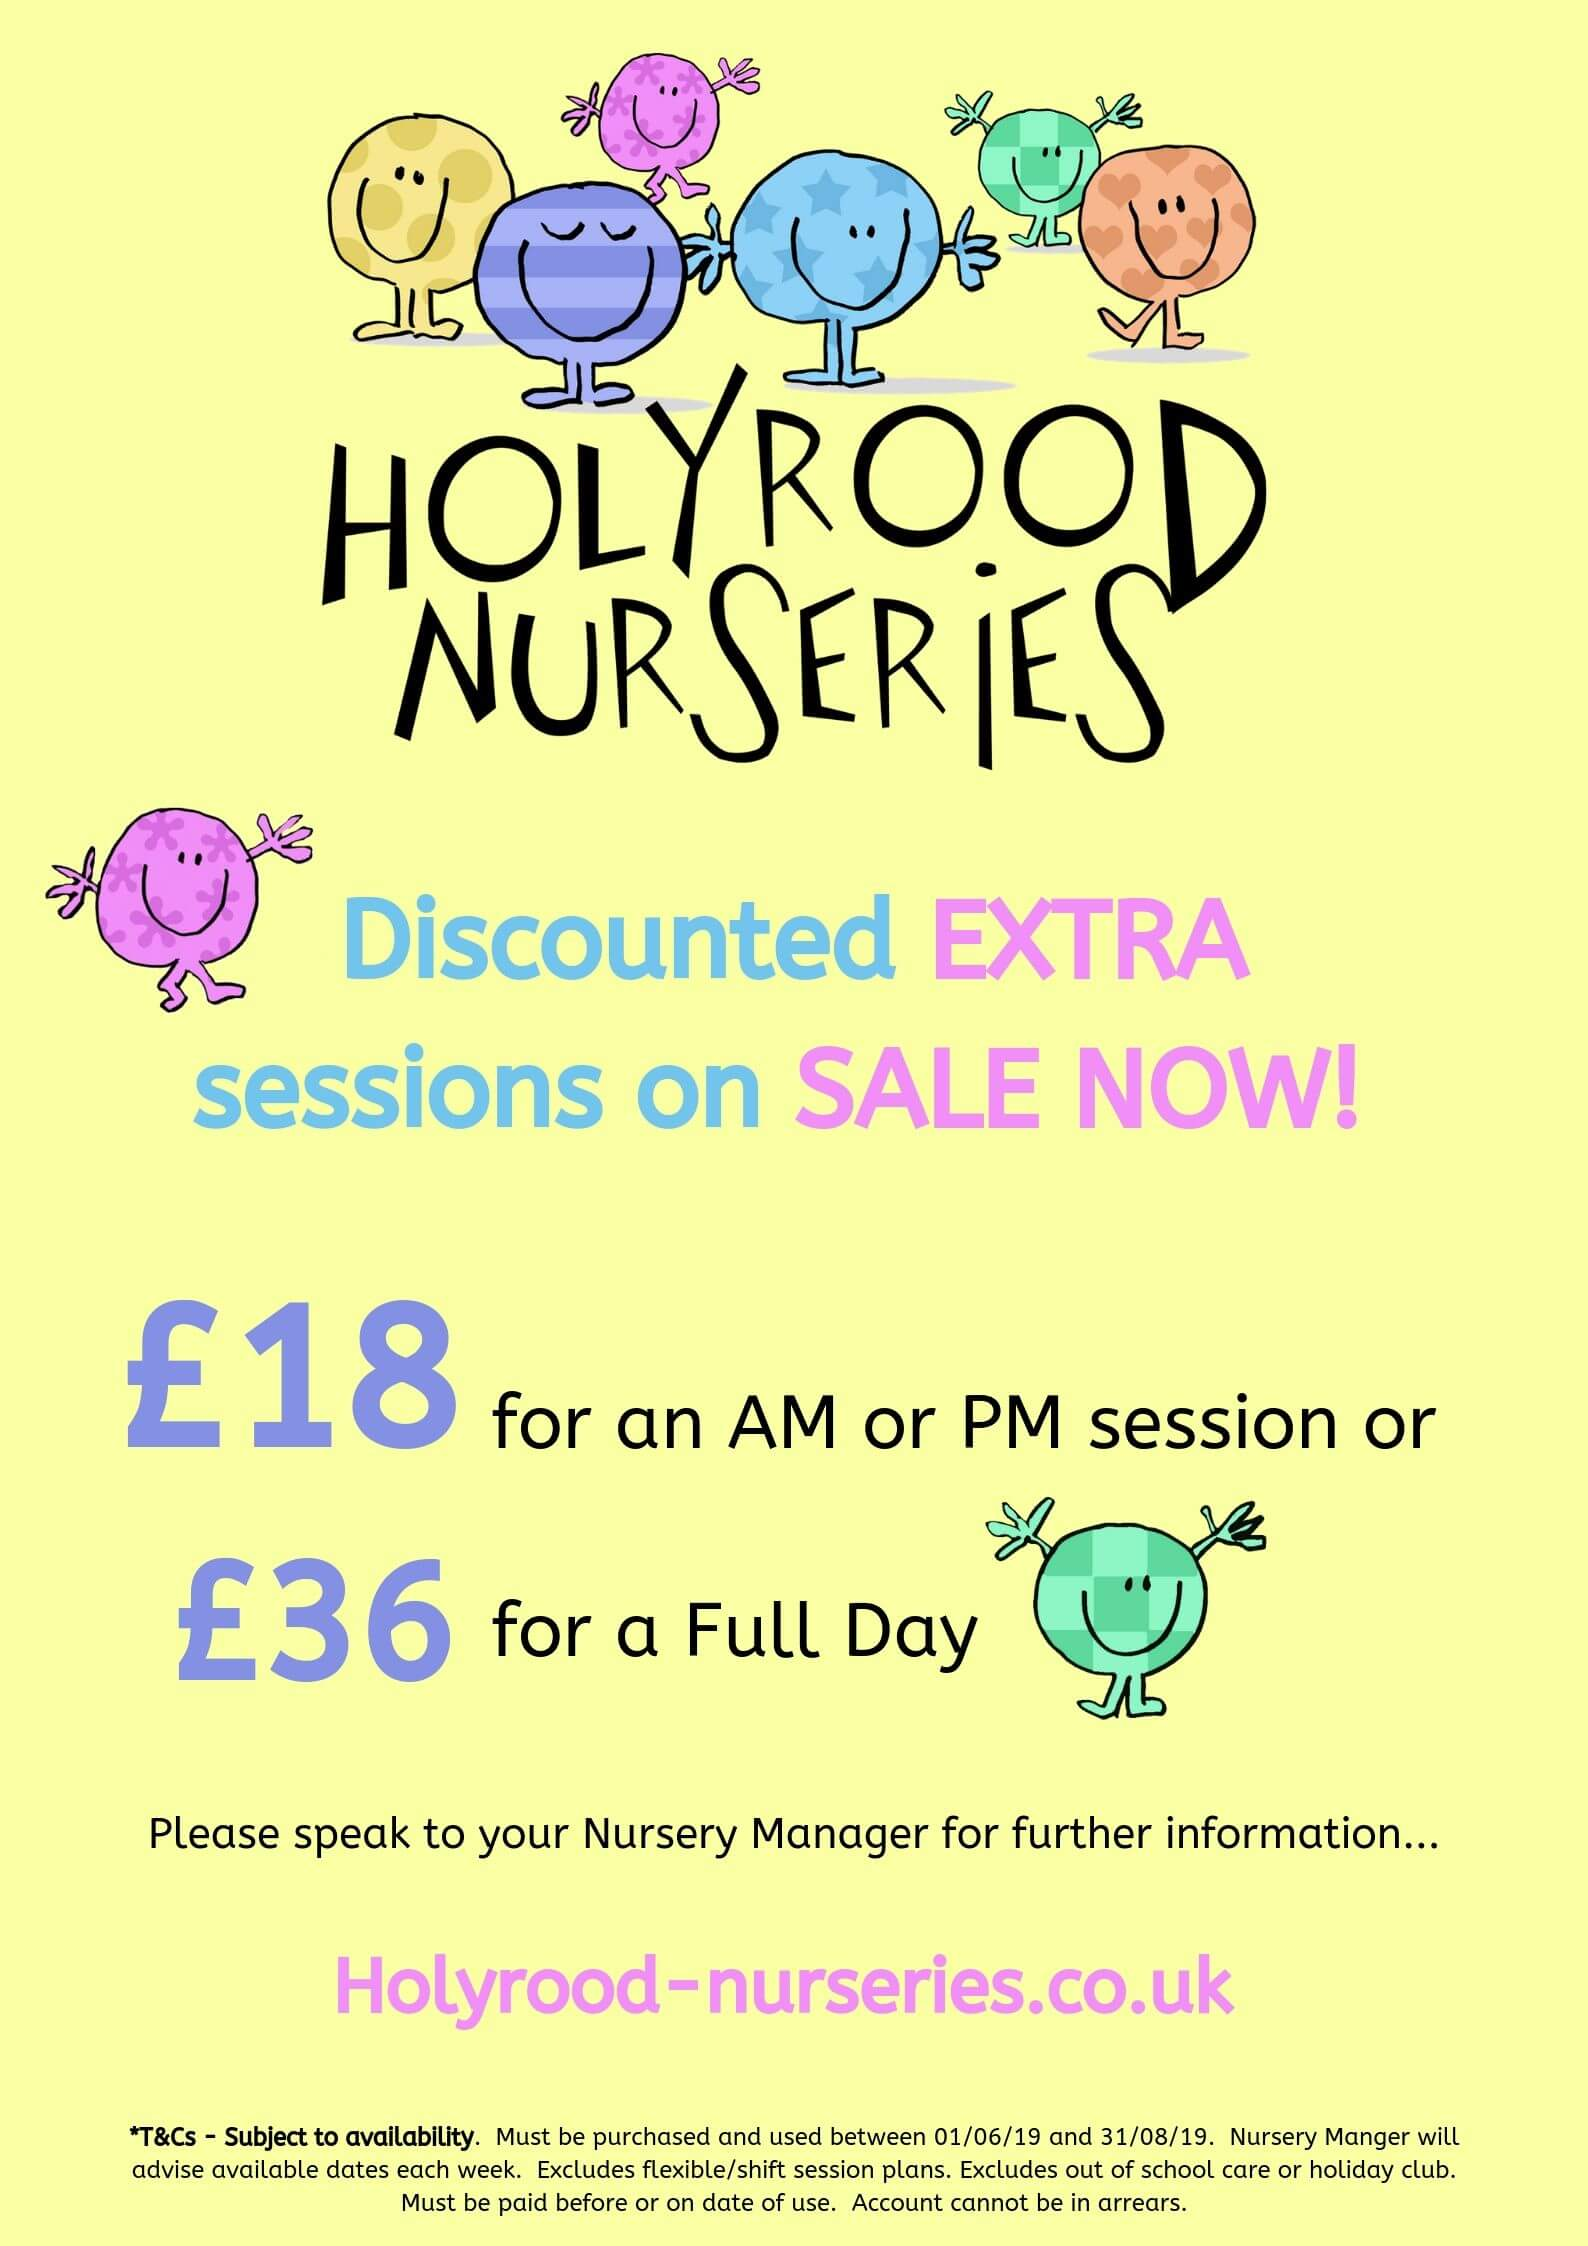 discounted nursery session at holyrood nurseries